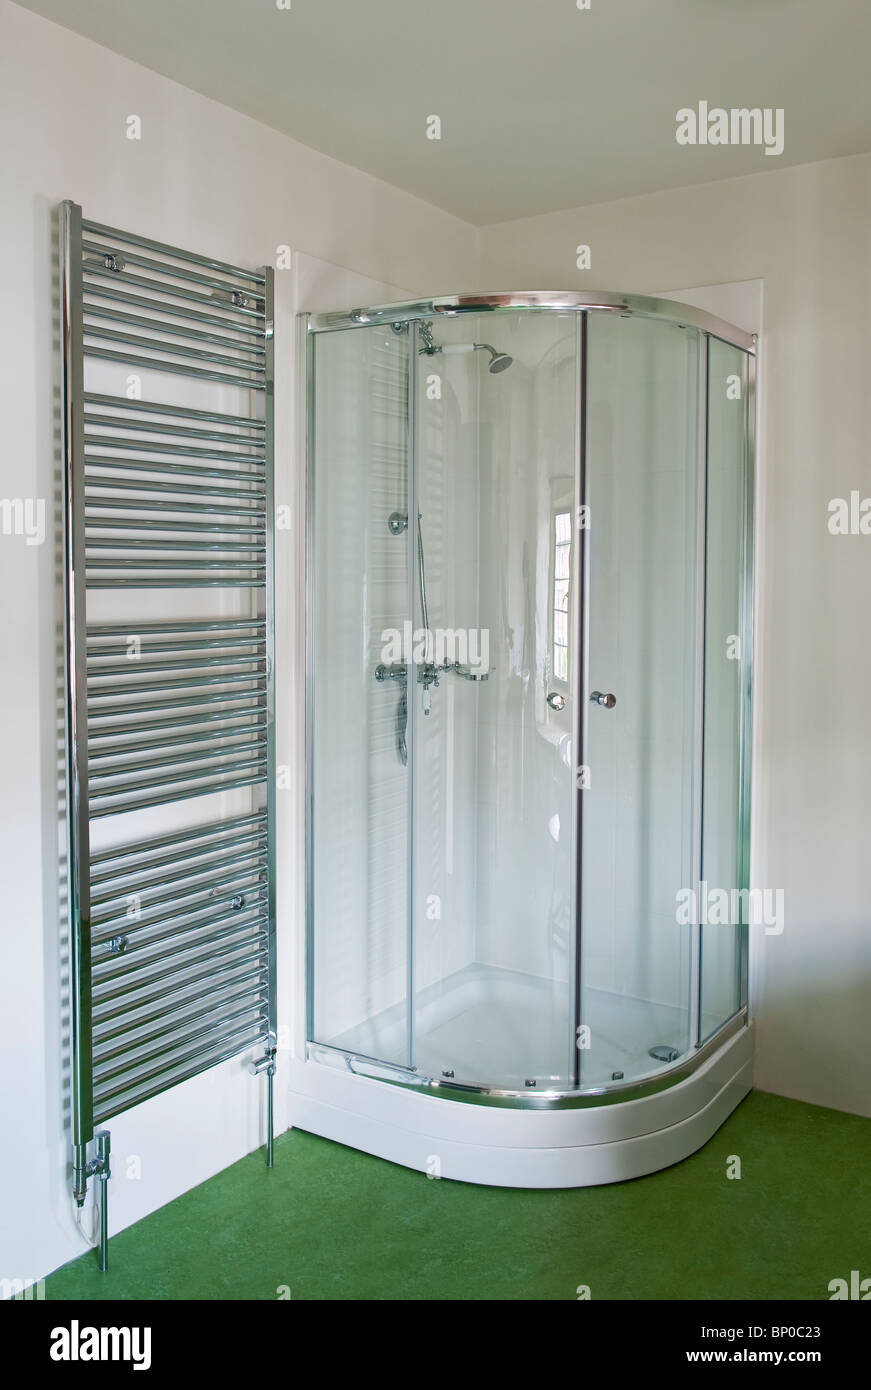 A heated towel rail and a corner shower unit in a modern bathroom ...